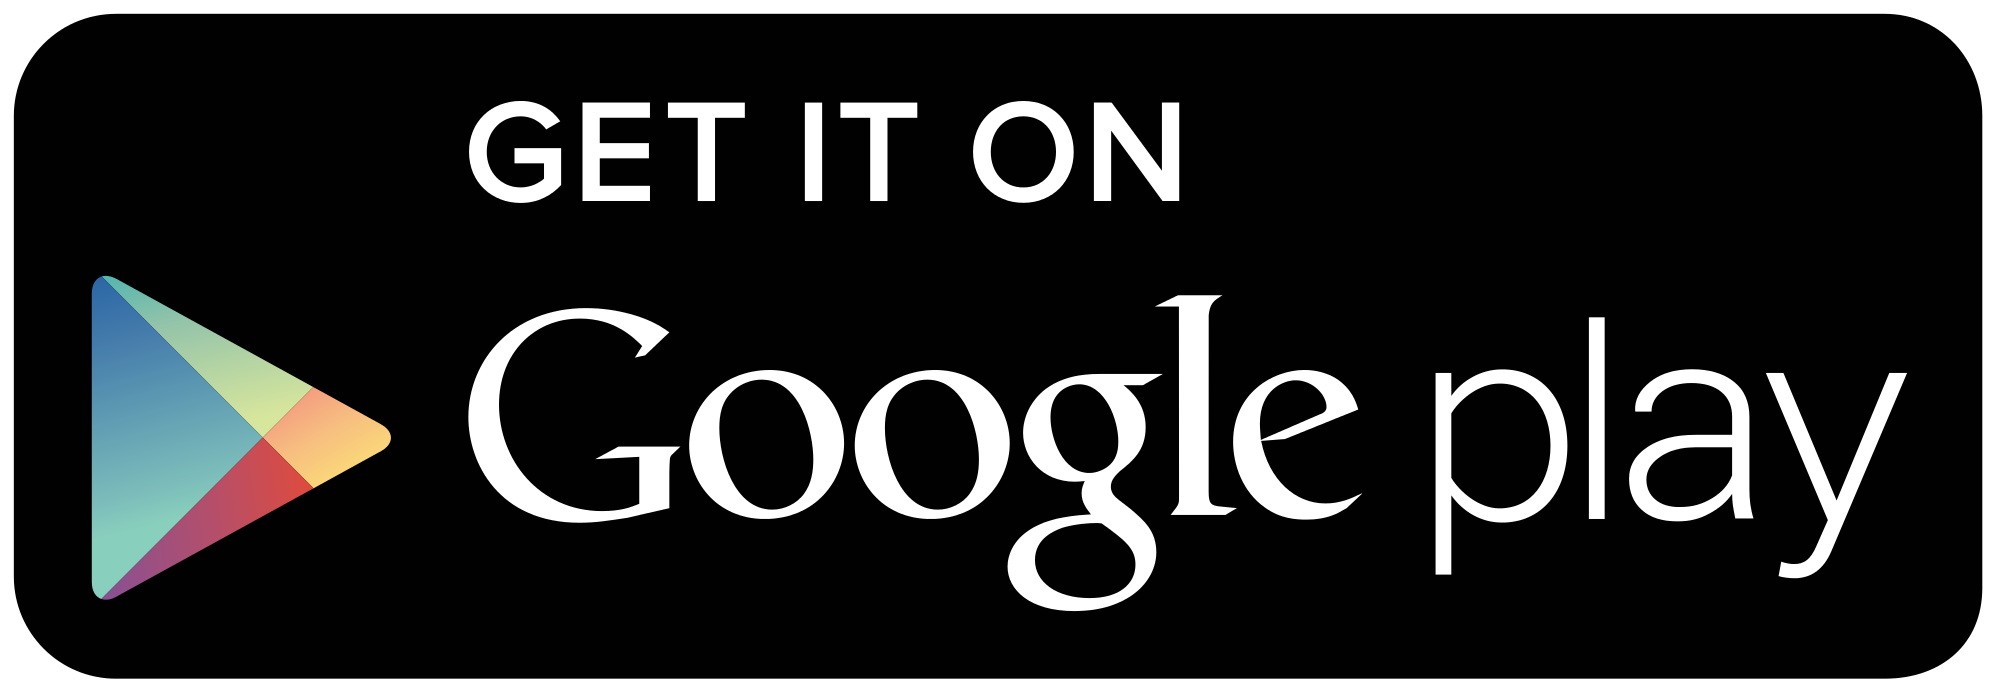 2000px-Get_it_on_Google_play.svg